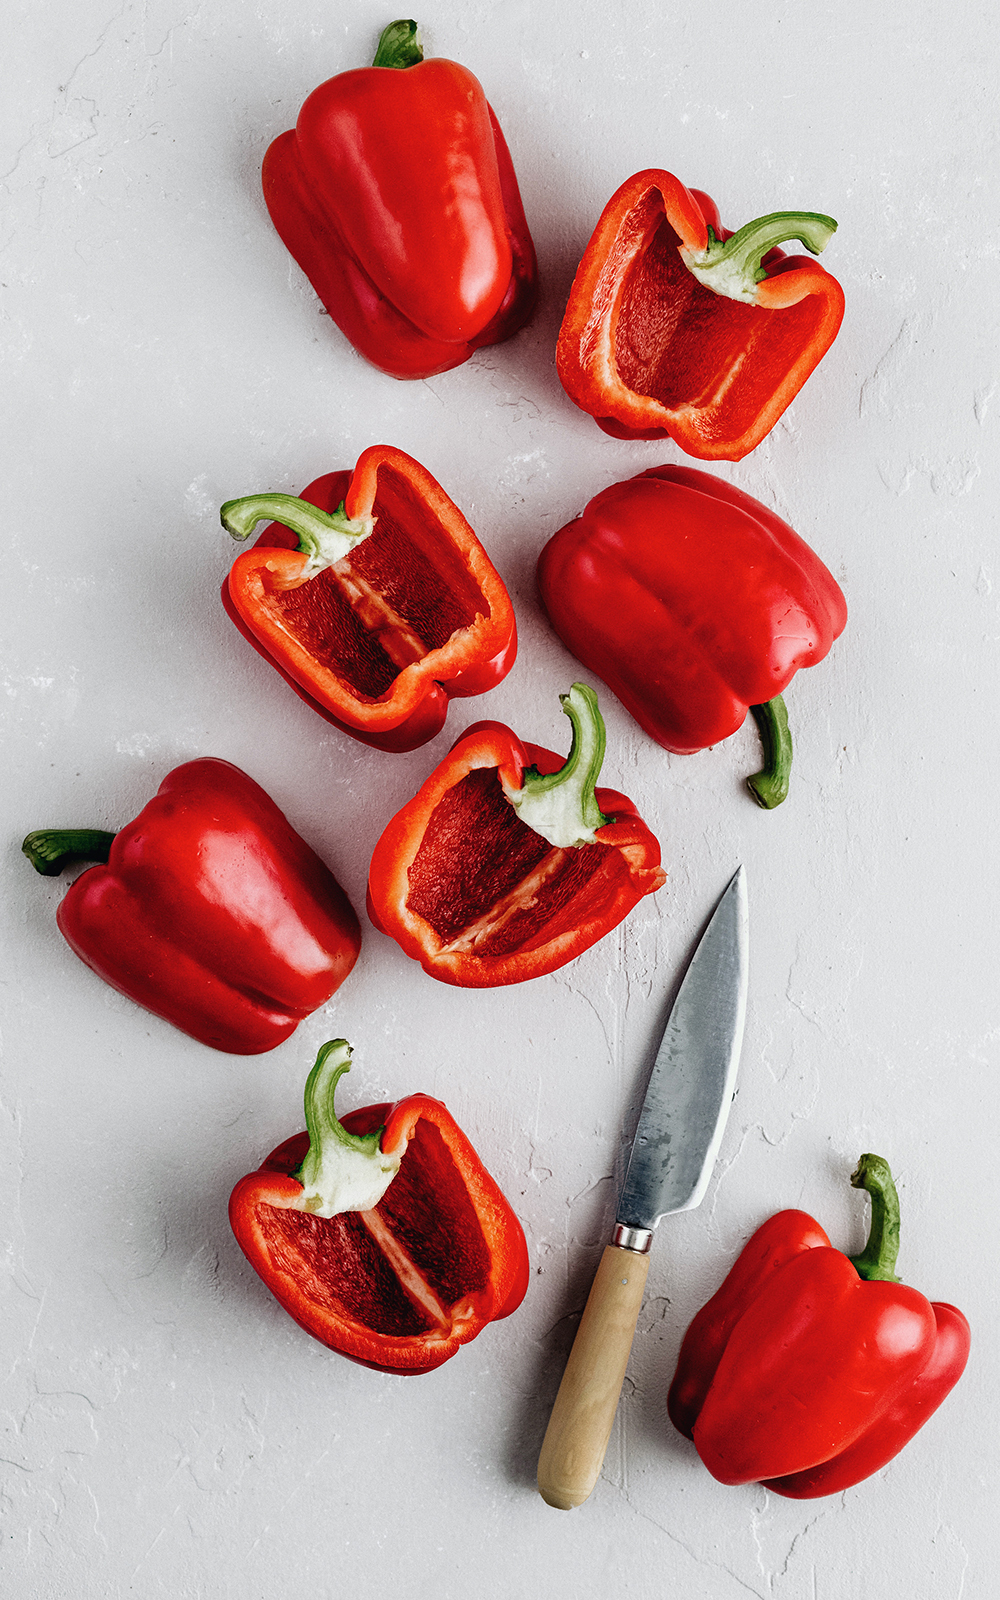 red bell peppers sliced in half to make quinoa stuffed bell peppers